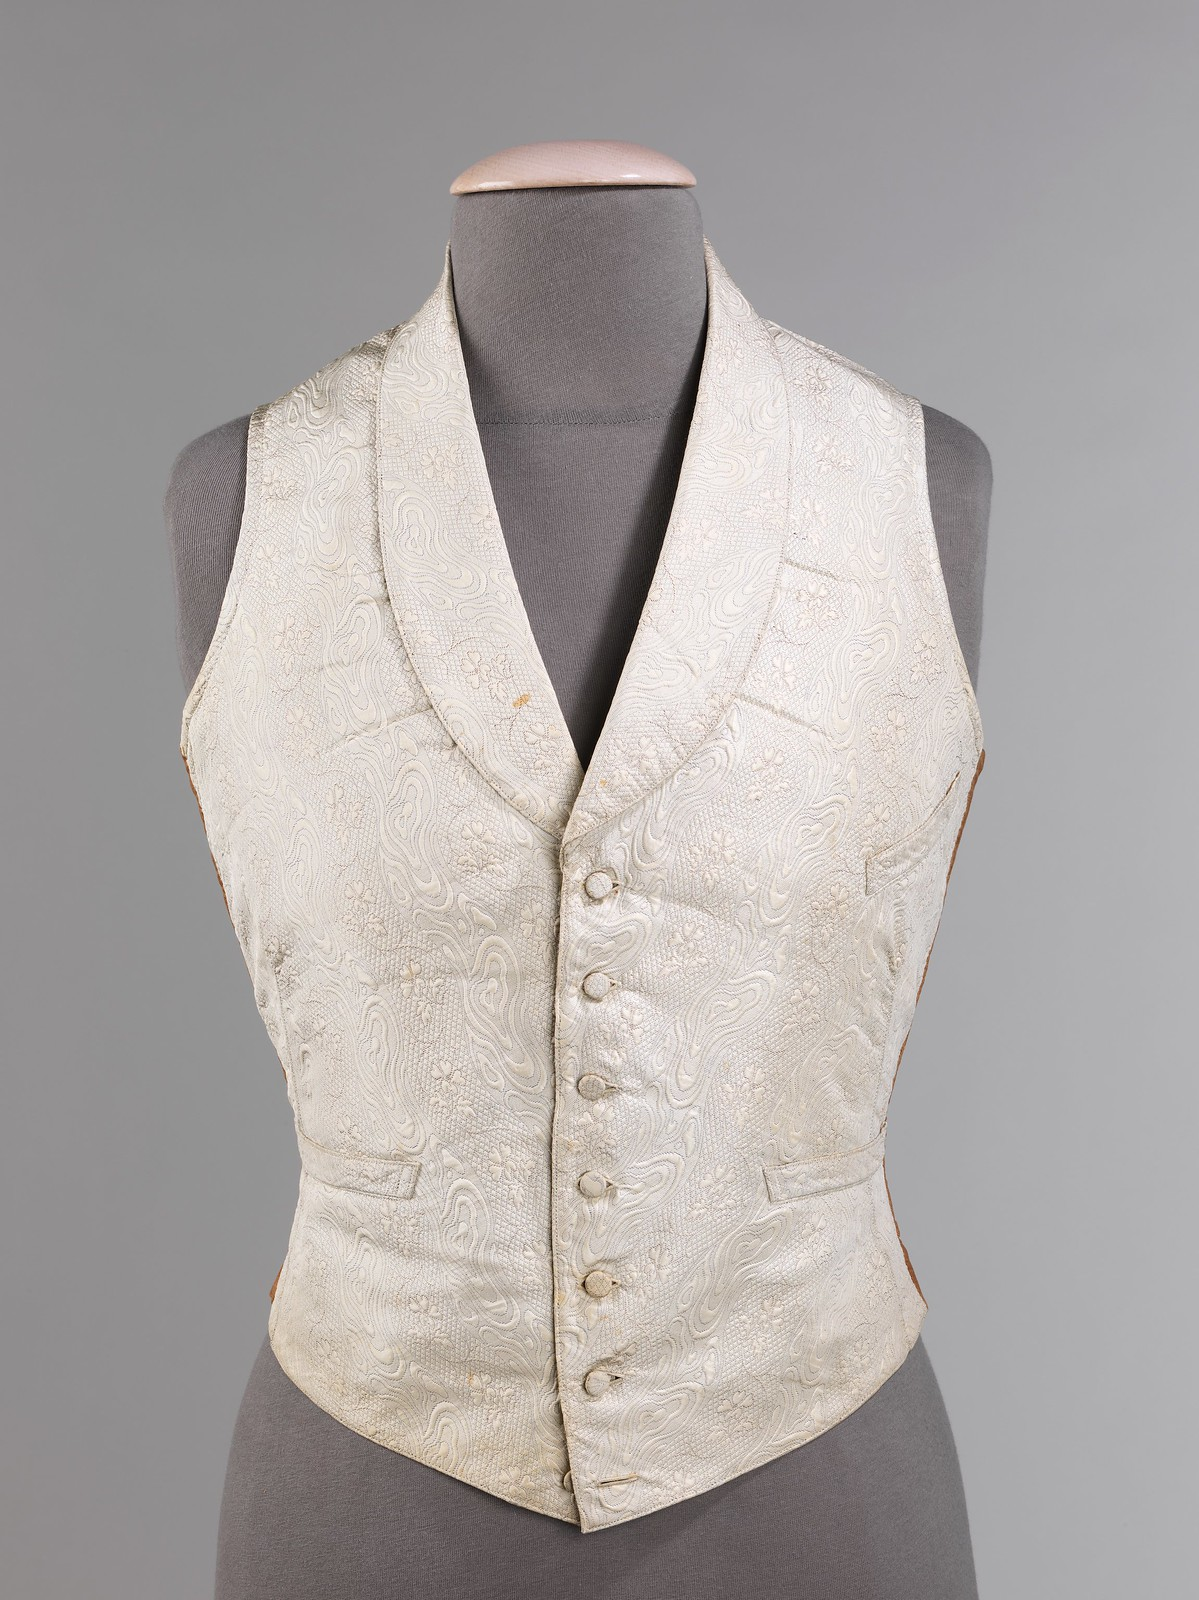 1850. American. Silk, cotton. metmuseum